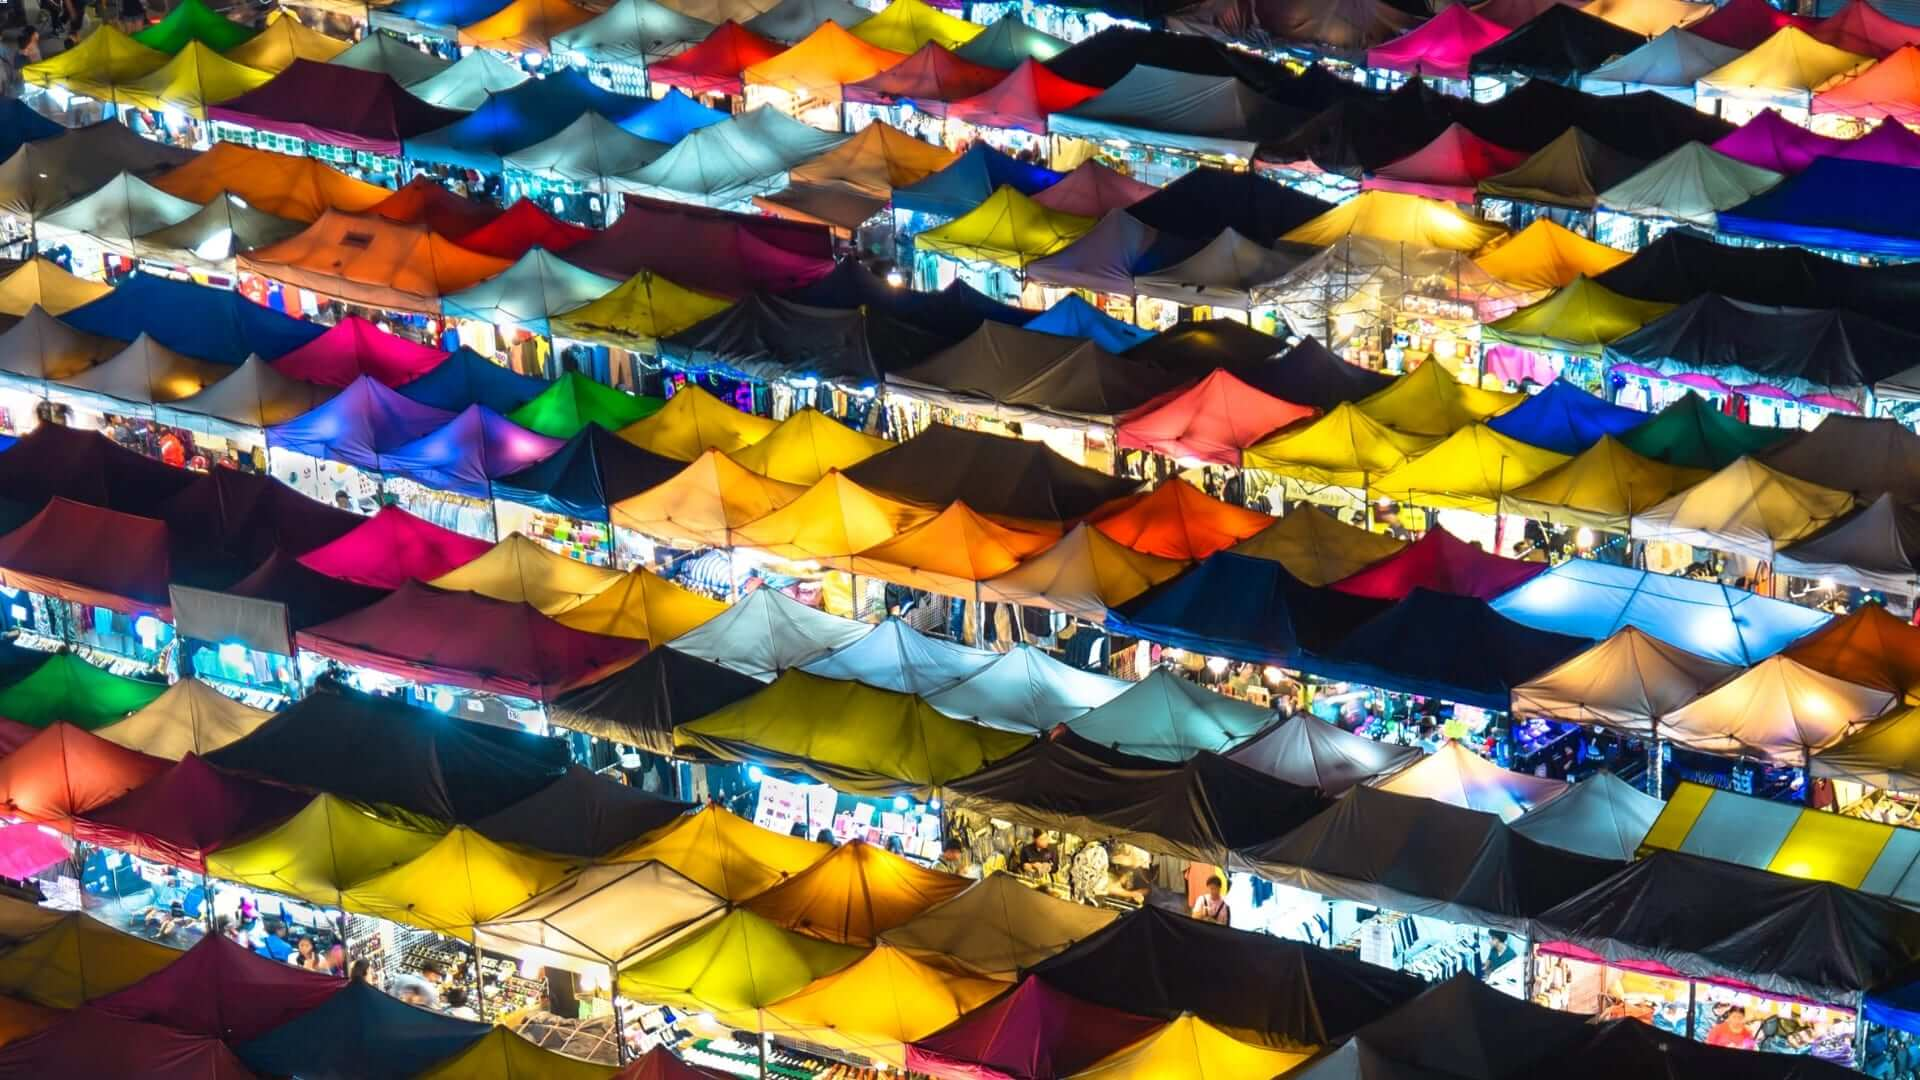 Many colored stalls are standing next to each other during a night in Bangkok.